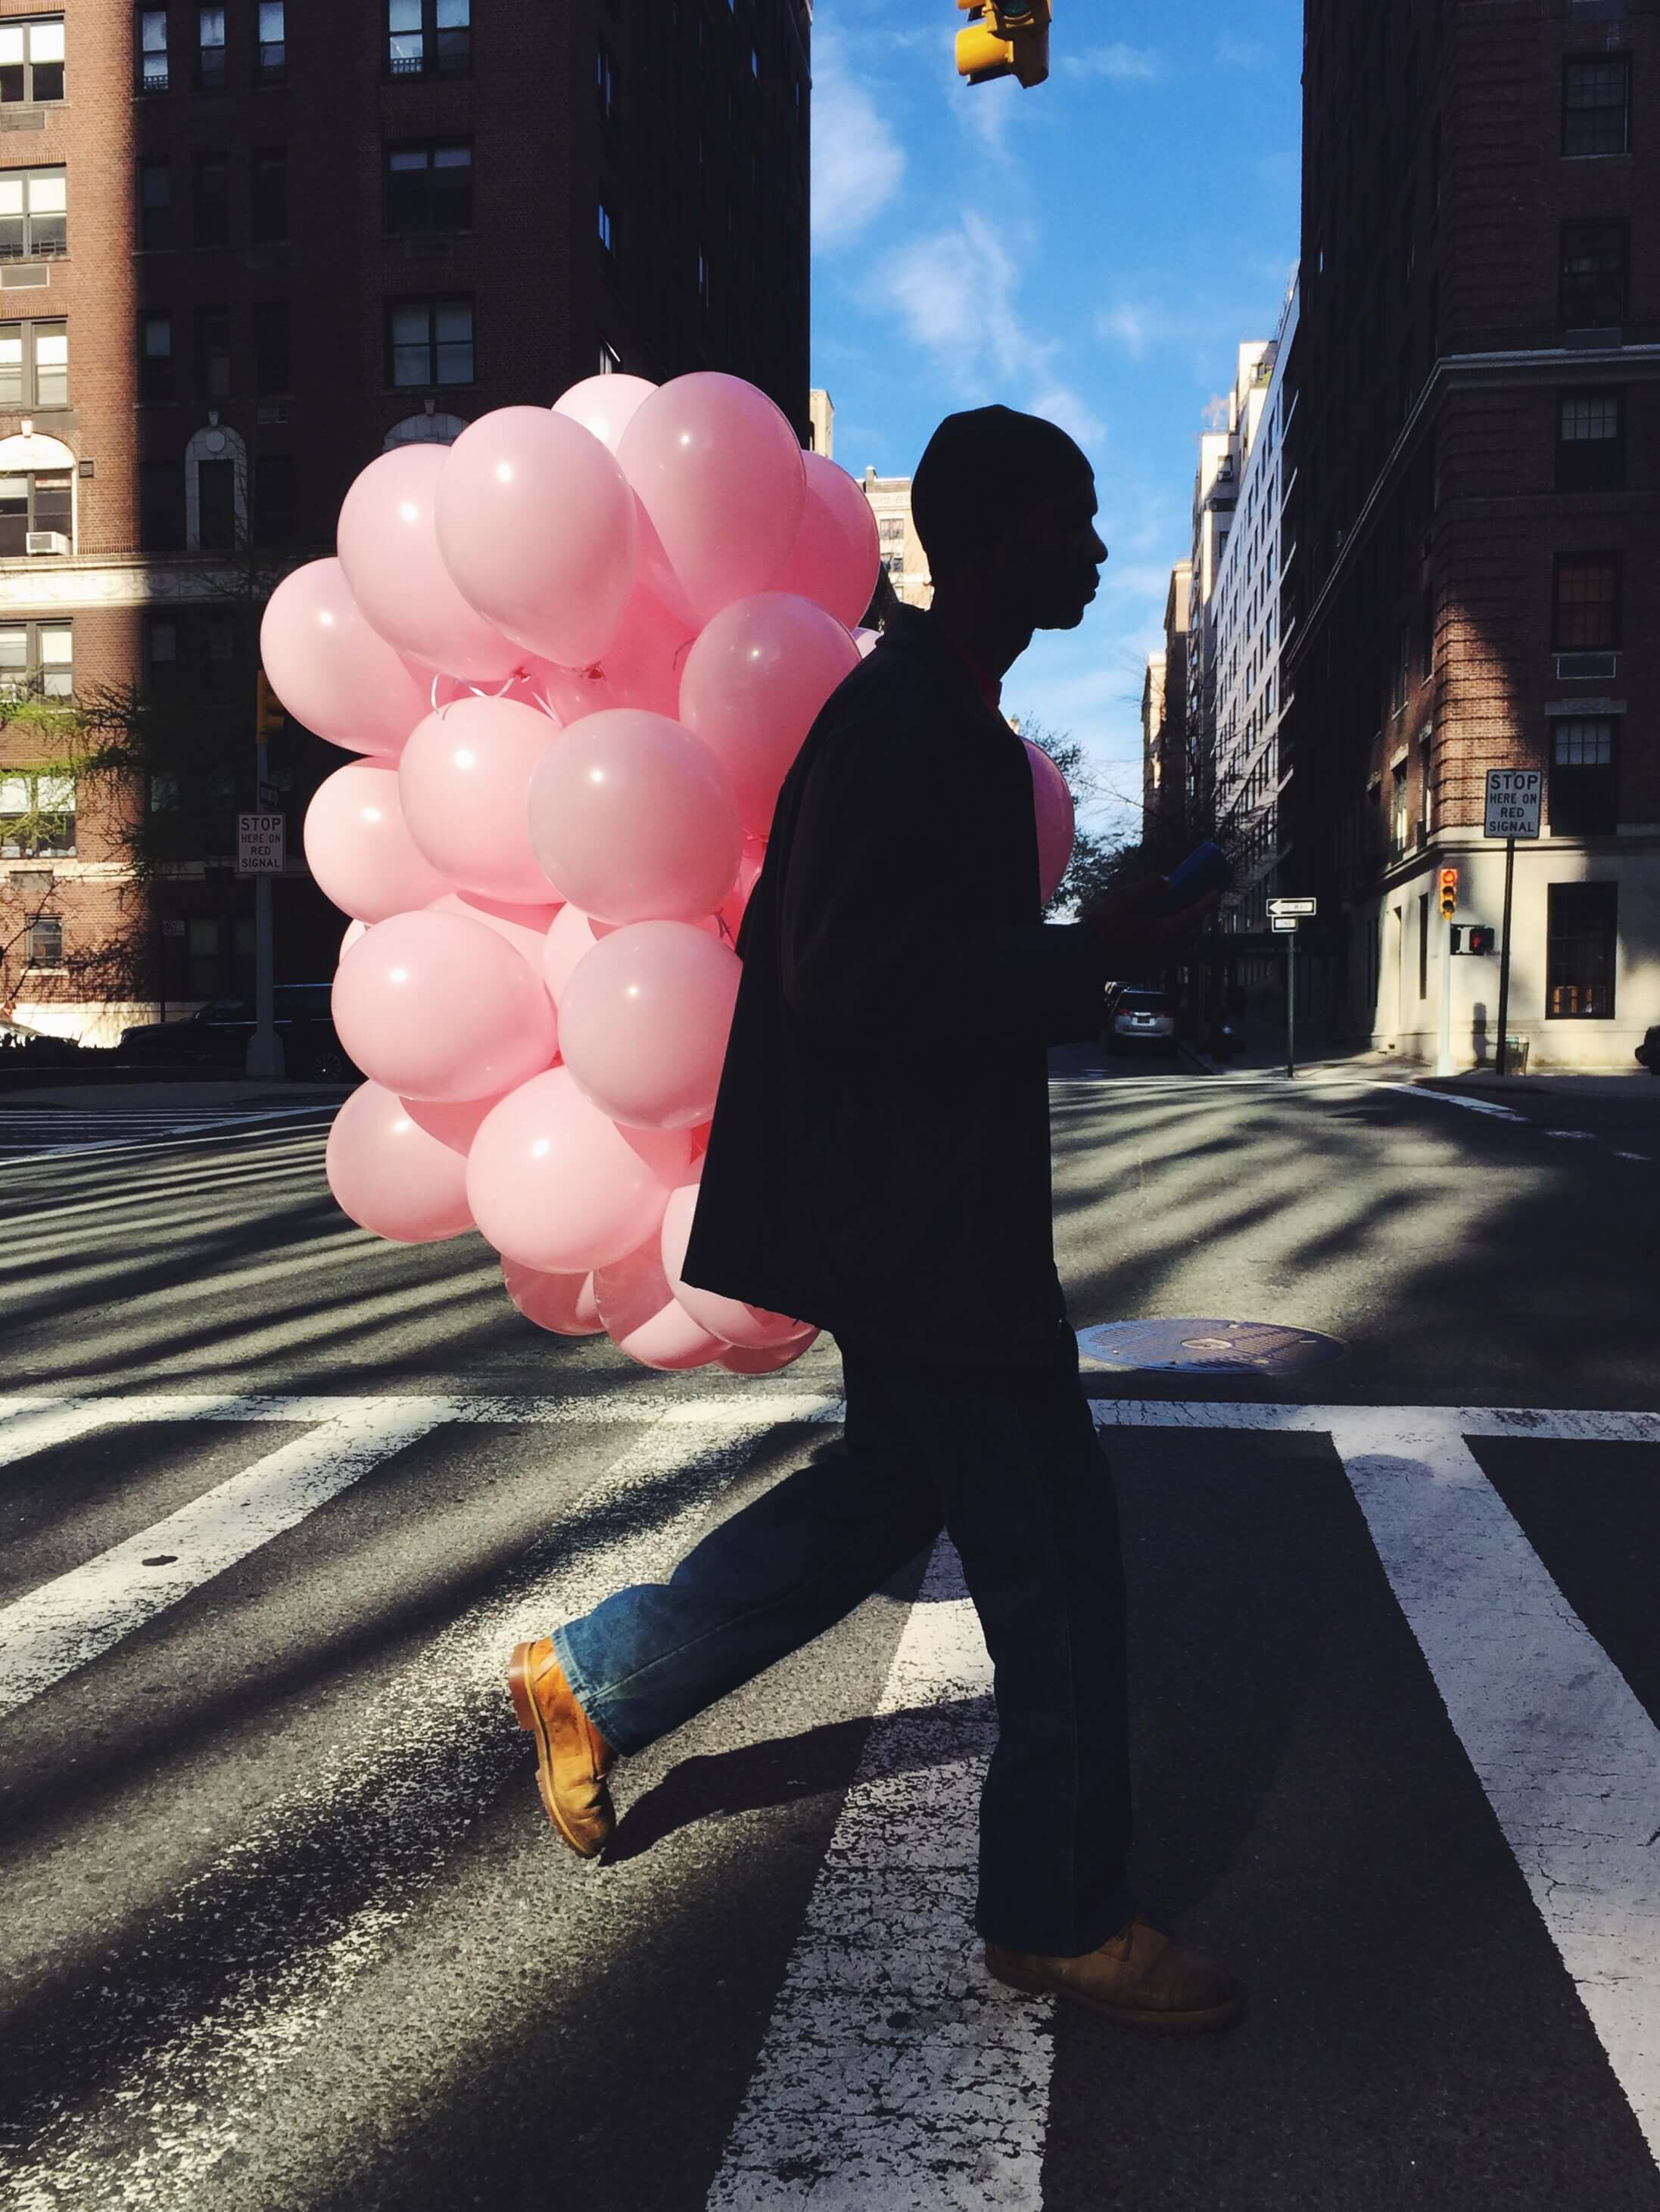 silhouette of a man carrying many pink balloons